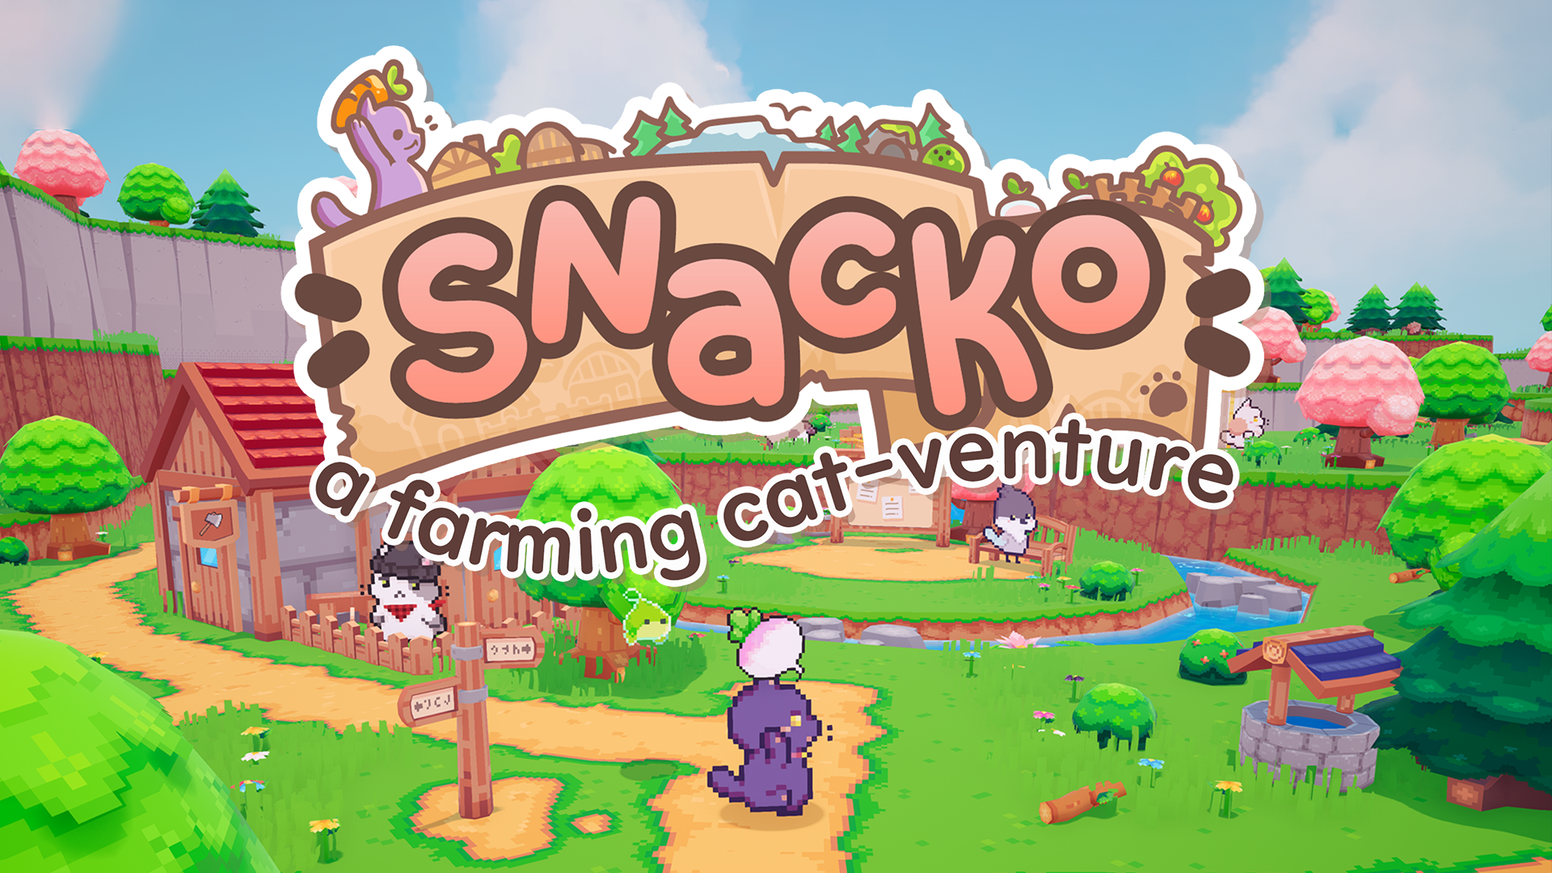 Snacko is about two kitties, Momo and Mikan, starting anew on a (seemingly) deserted island with a mysterious past.